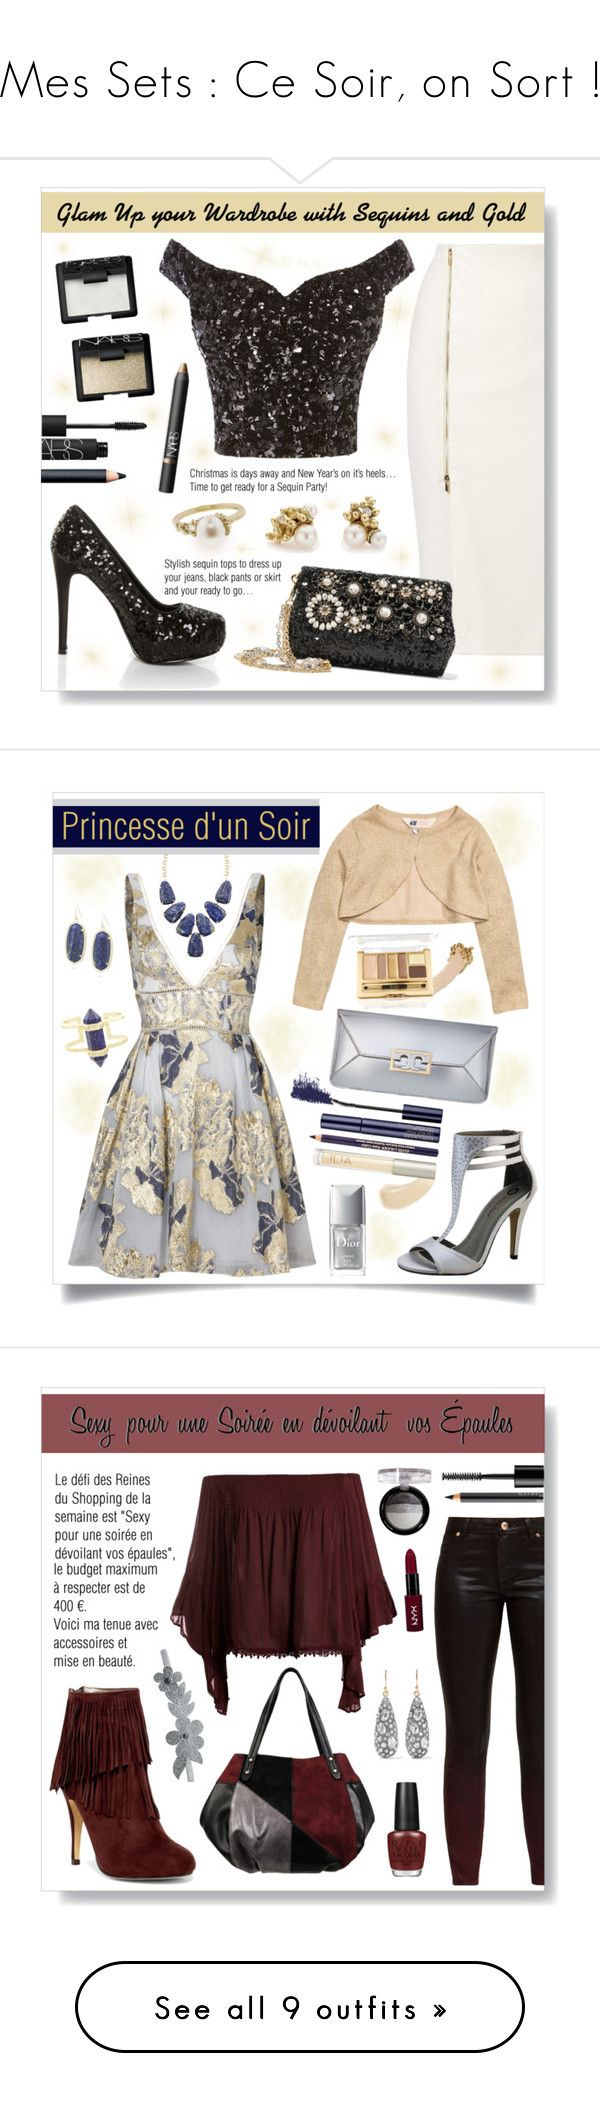 """Mes Sets : Ce Soir, on Sort !"" by drinouchou ❤ liked on Polyvore featuring MaxMara, Shirò, Dolce&Gabbana, Ruth Tomlinson, NARS Cosmetics, Notte by Marchesa, Michael Antonio, Tory Burch, Gucci and Christian Dior"